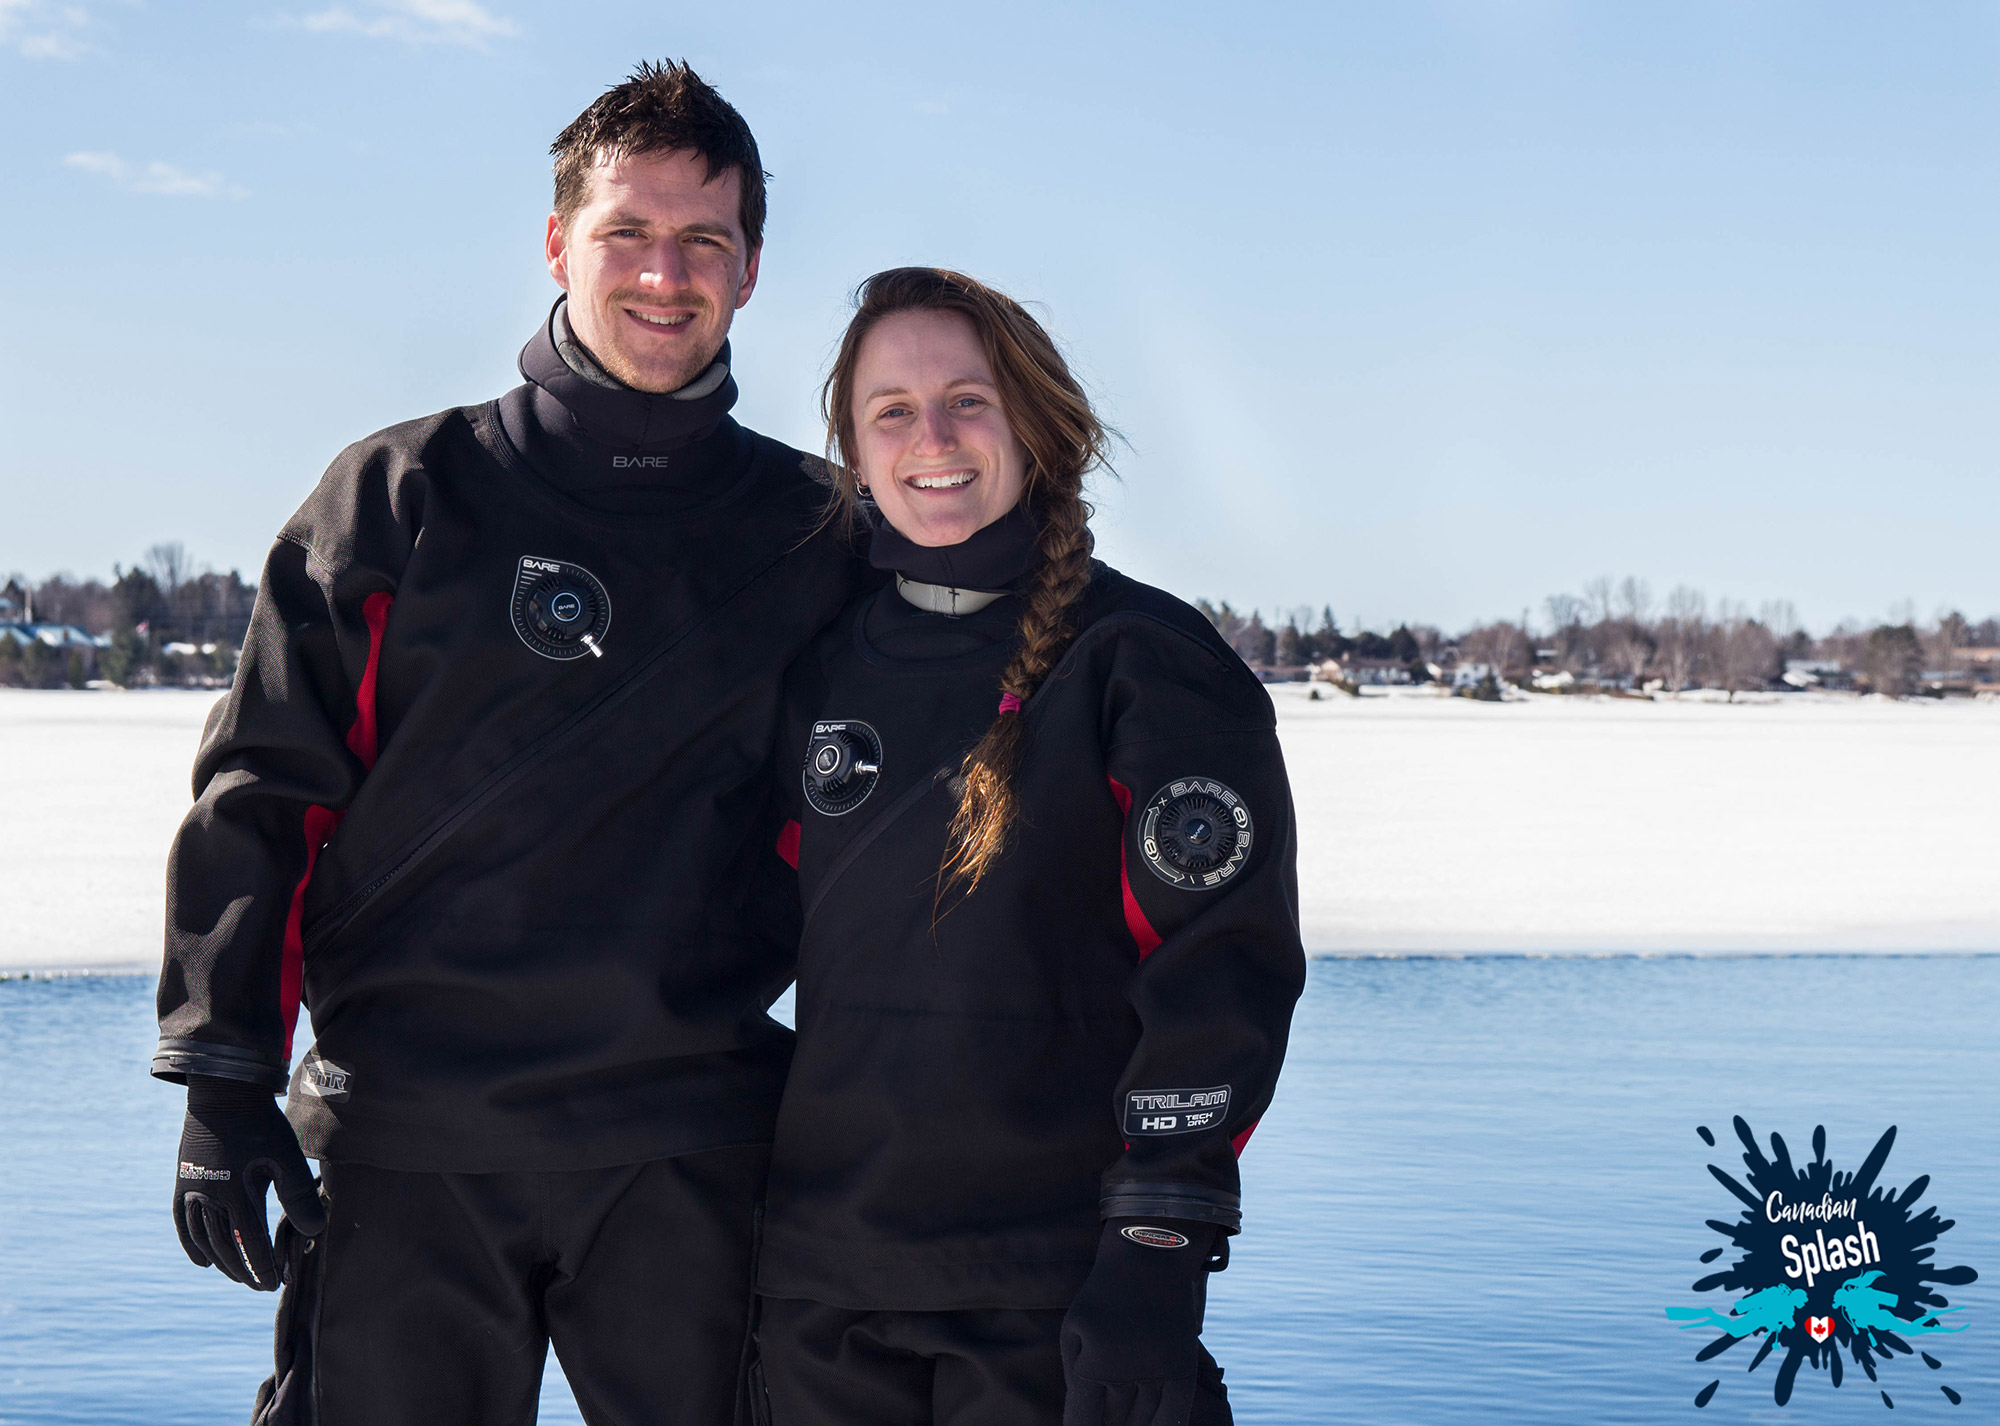 Joey and Ali, ready for the icy plunge. Photo: Canadian Splash